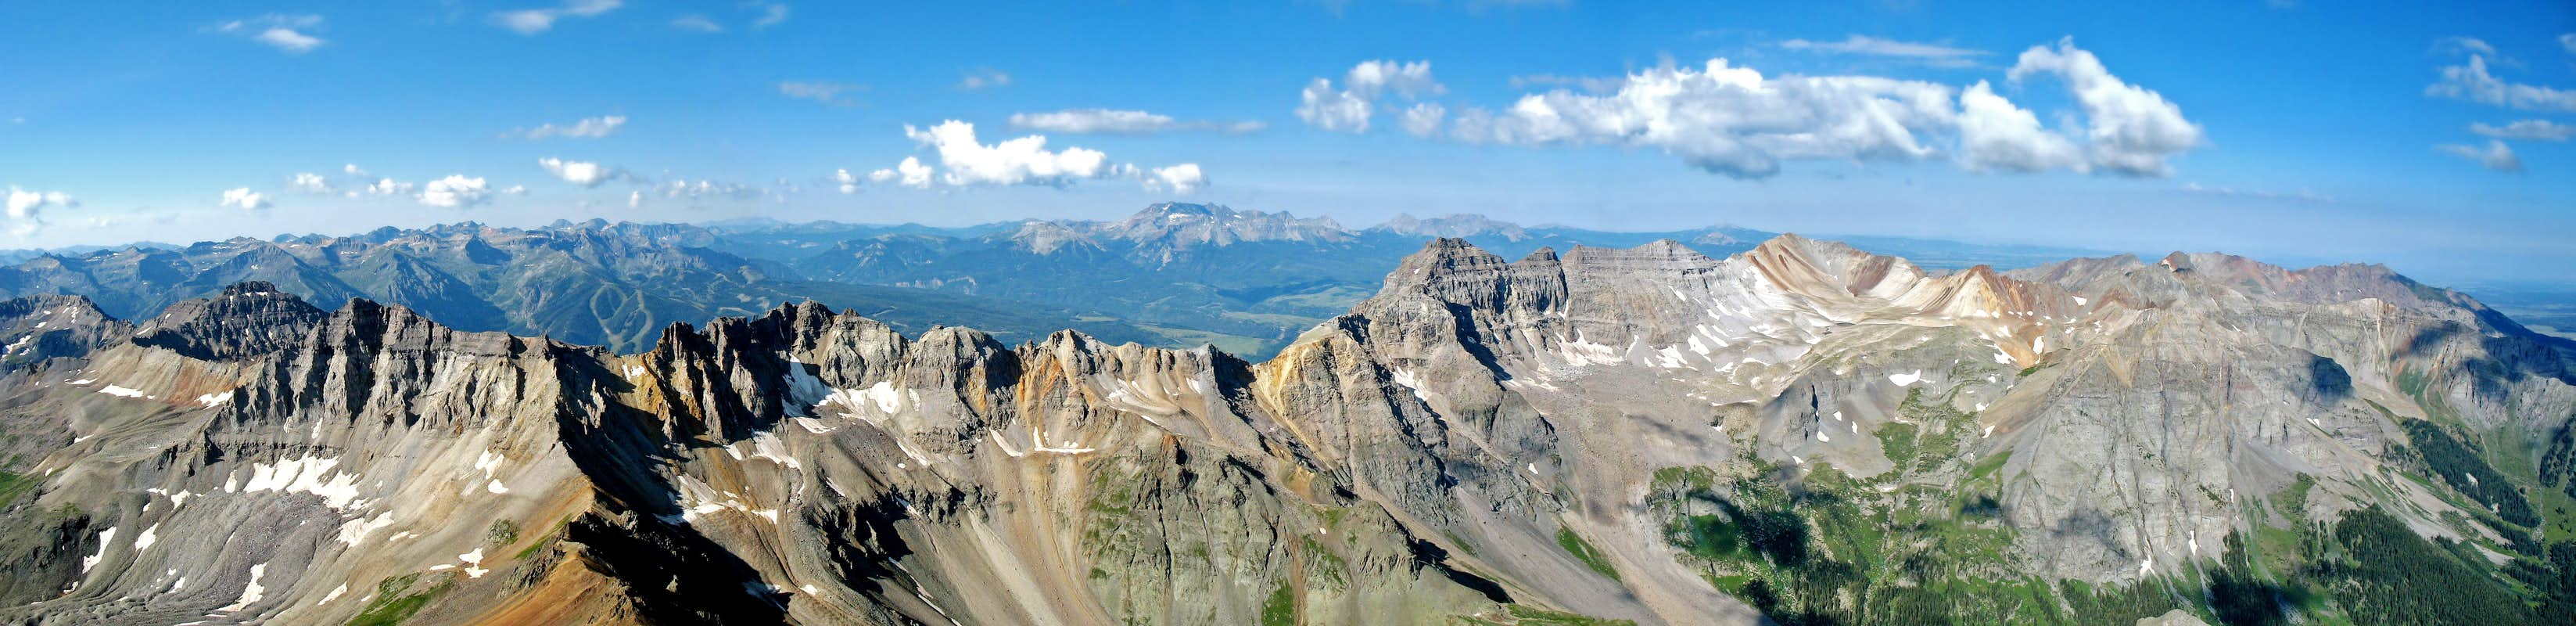 Panorama from the summit of Mount Sneffels.